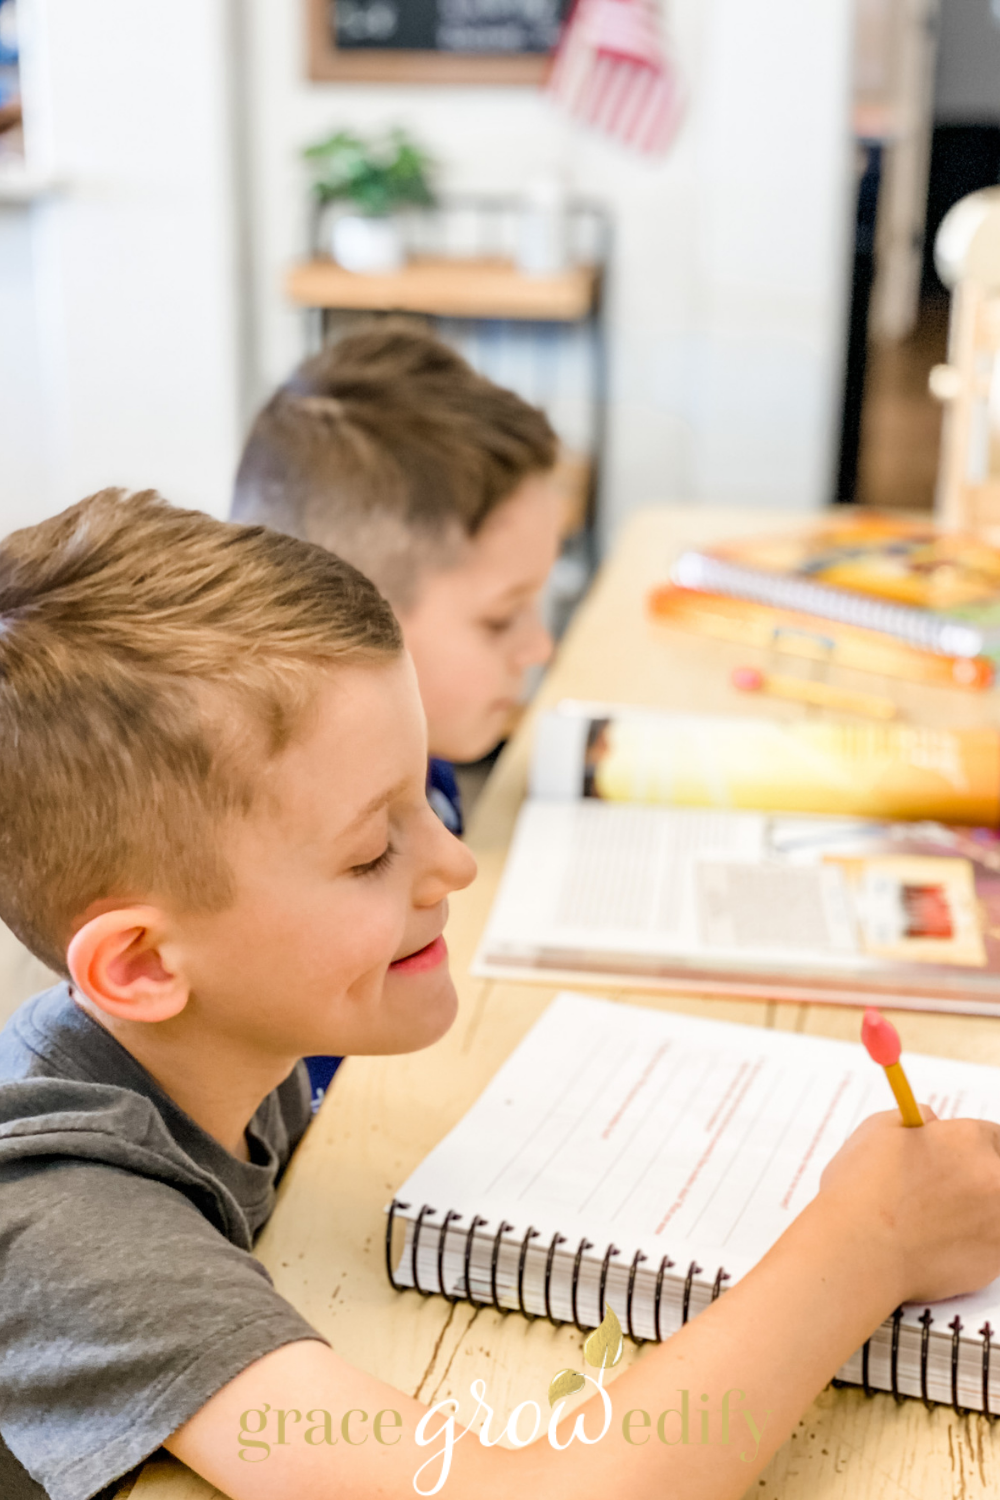 See Apologia's new homeschool Bible curriculum, The Word in Motion, for families who want to incorporate Bible study into their days. #biblecurriculum #homeschool #homeschoolbible #christianhomeschooling